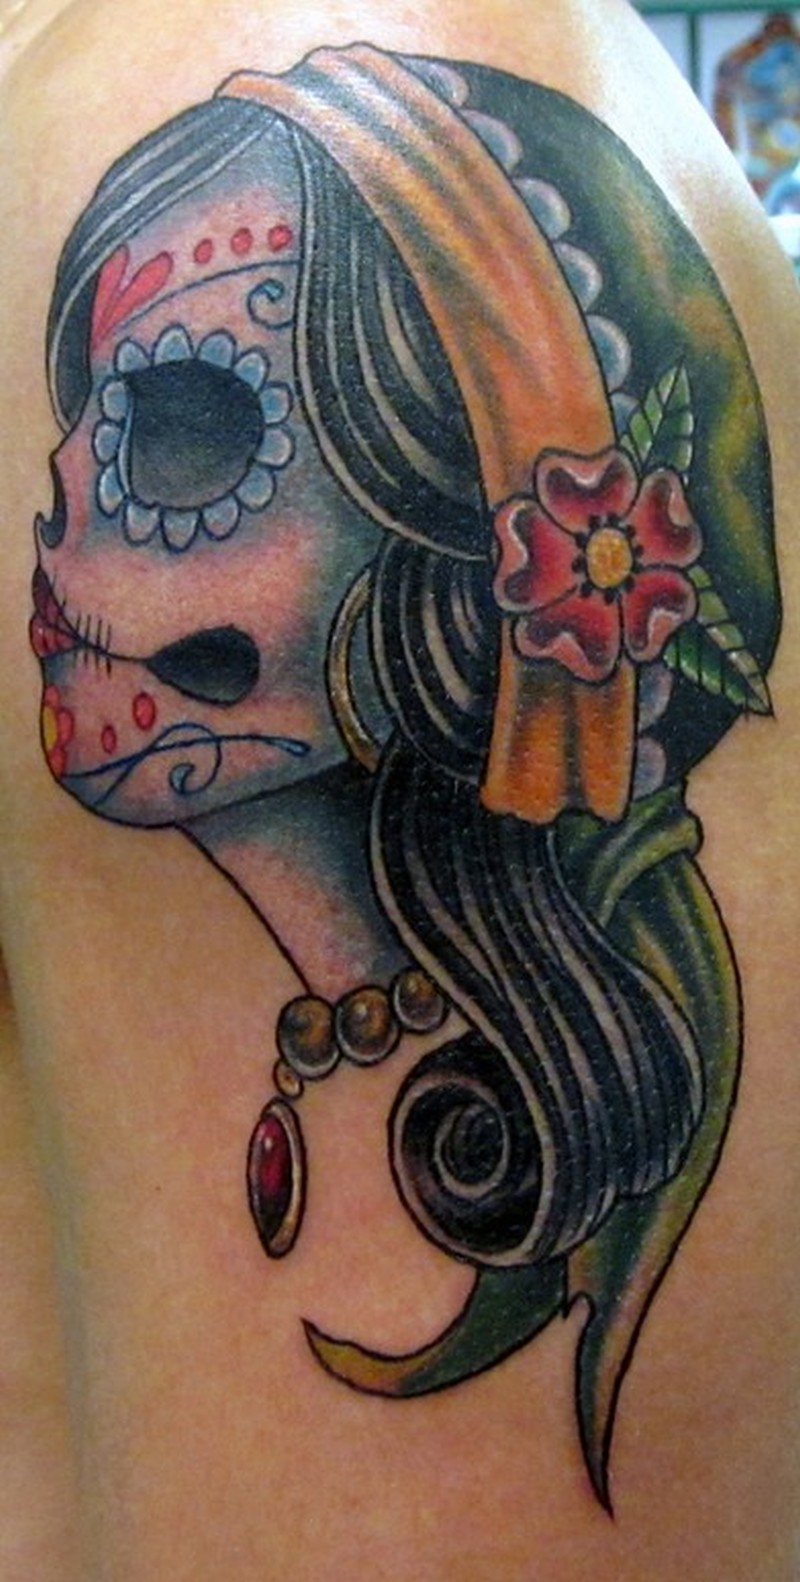 Sugar skull gypsy tattoo design 3